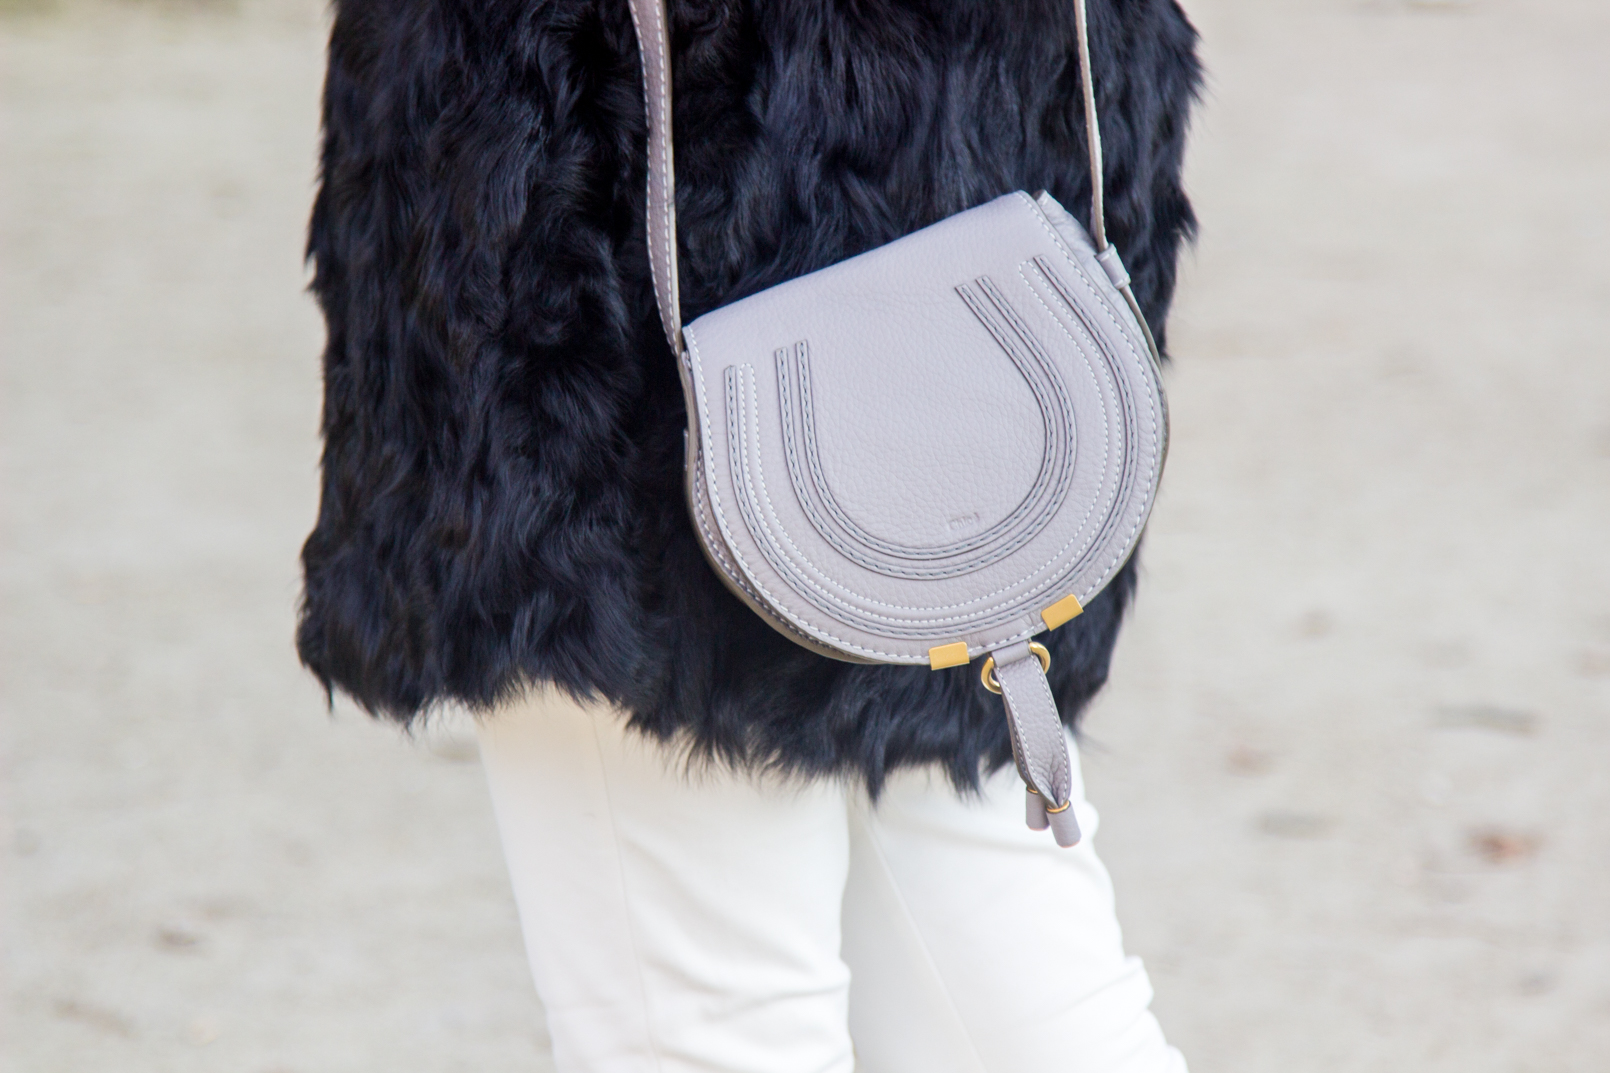 Le Fashionaire blogger catarine martins fashion inspiration fur black sfera coat white zara trousers mini marcie chloe zara grey bag 4126 EN blogger catarine martins fashion inspiration fur black sfera coat white zara trousers mini marcie chloe zara grey bag 4126 EN